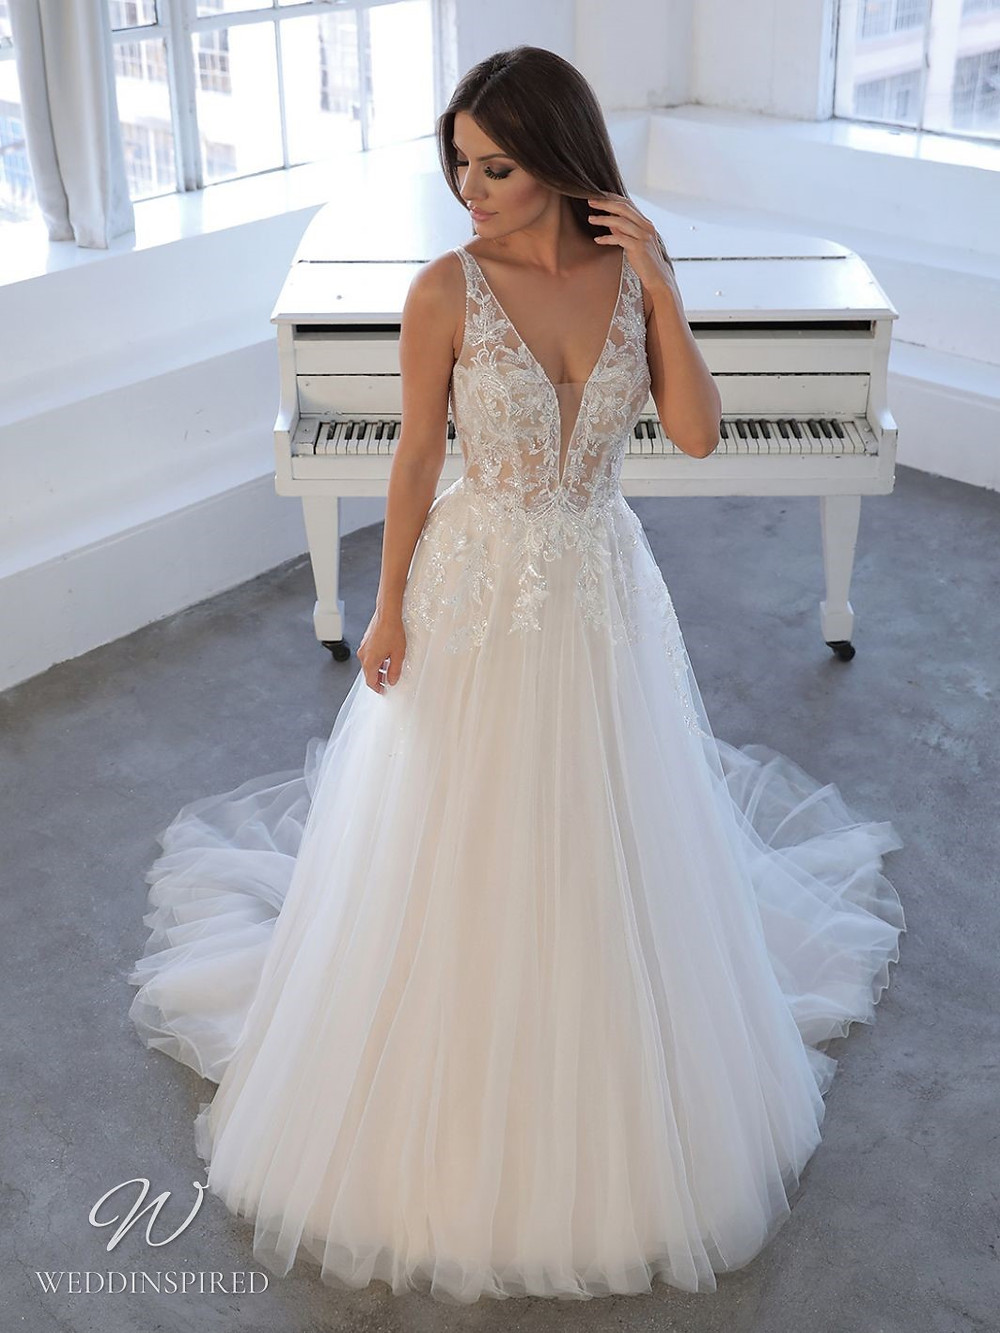 A Blue by Enzoani 2021 lace and tulle A-line wedding dress with a v neck